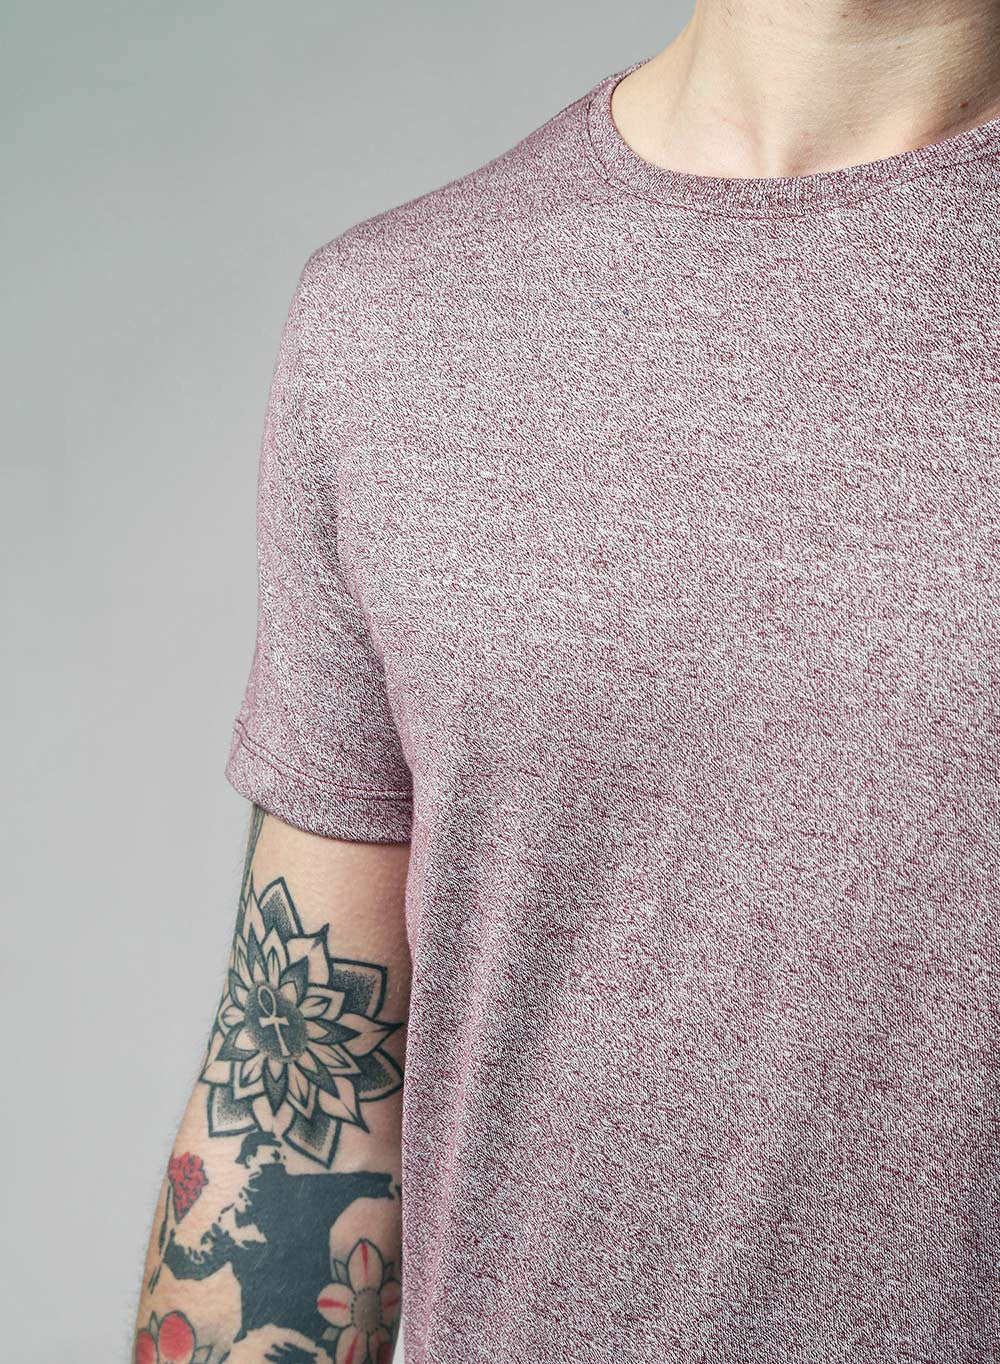 Lindbergh Slim Fit Burgundy Marl T-shirt - LoveClothing.com - 3